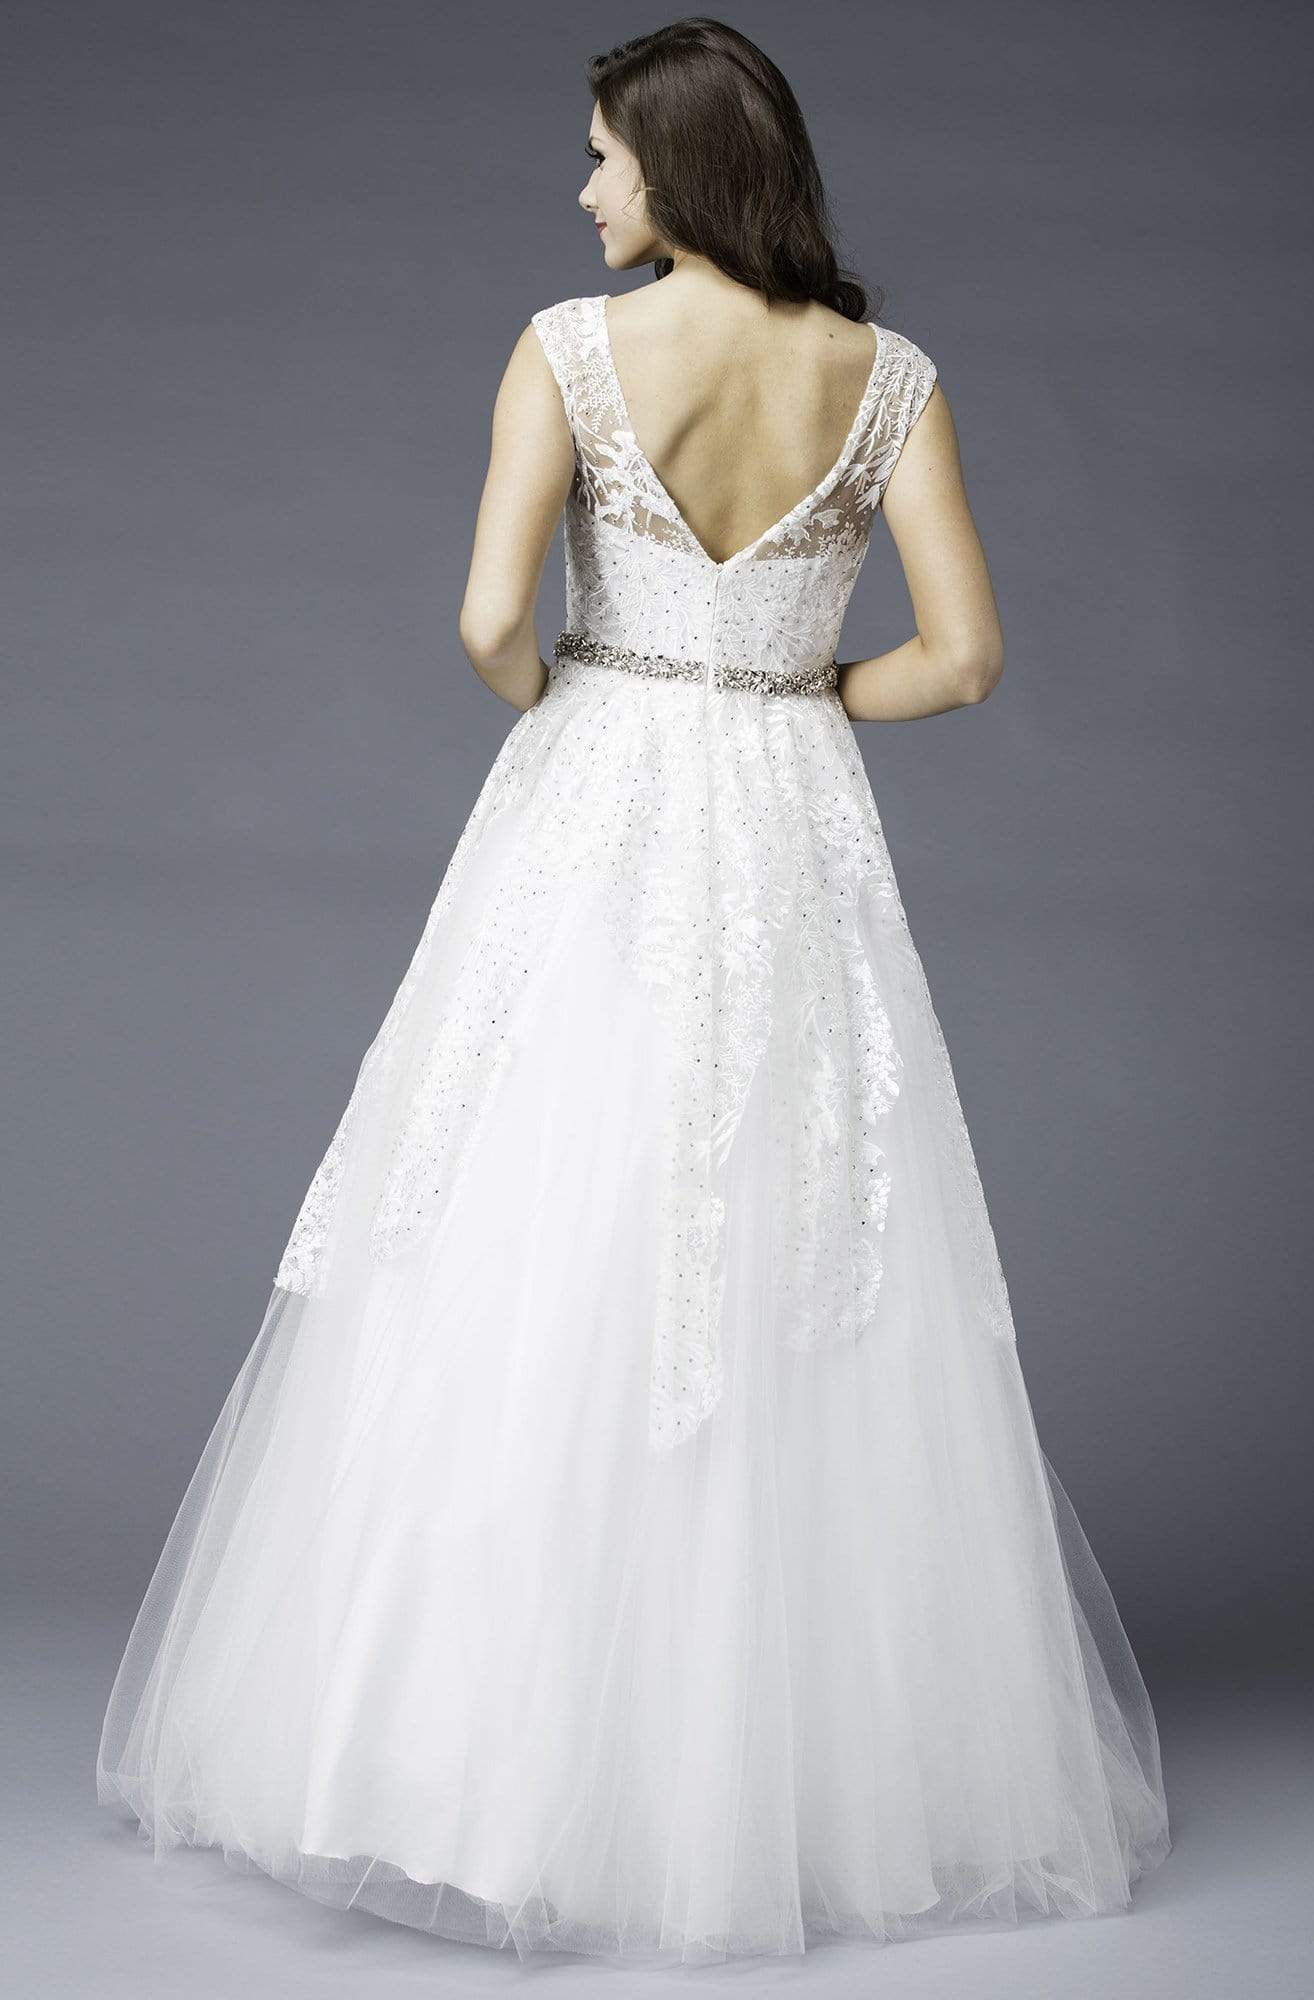 Colors Couture - J034 Embellished Illusion Bateau Ballgown in White